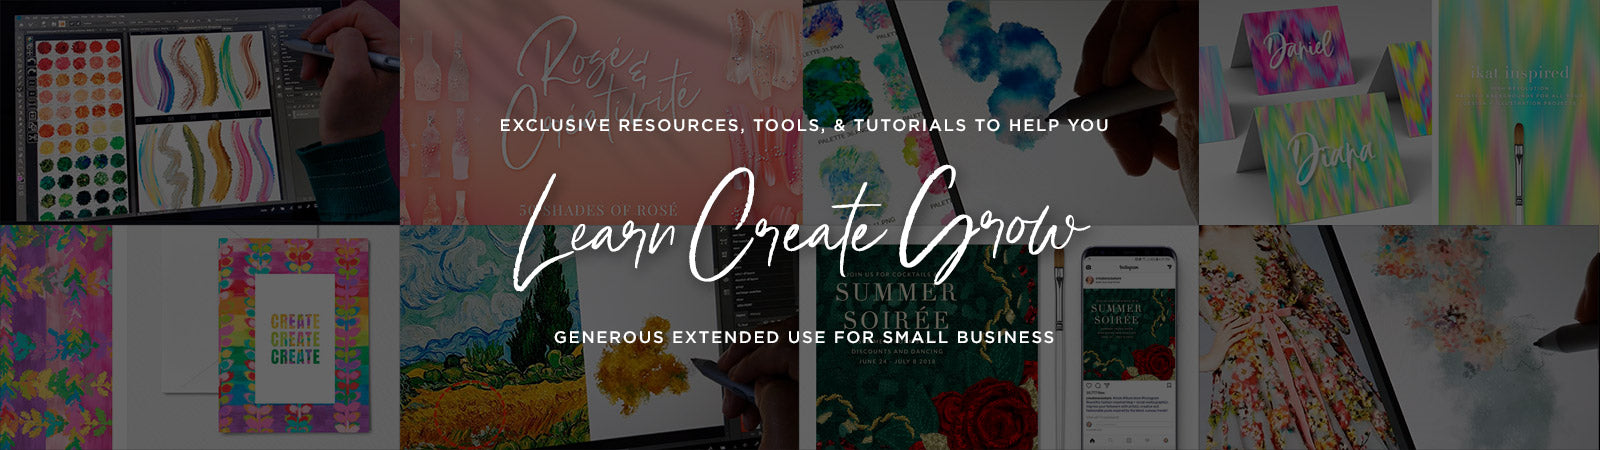 Best Selling Resources For Graphic Designers And Illustrators